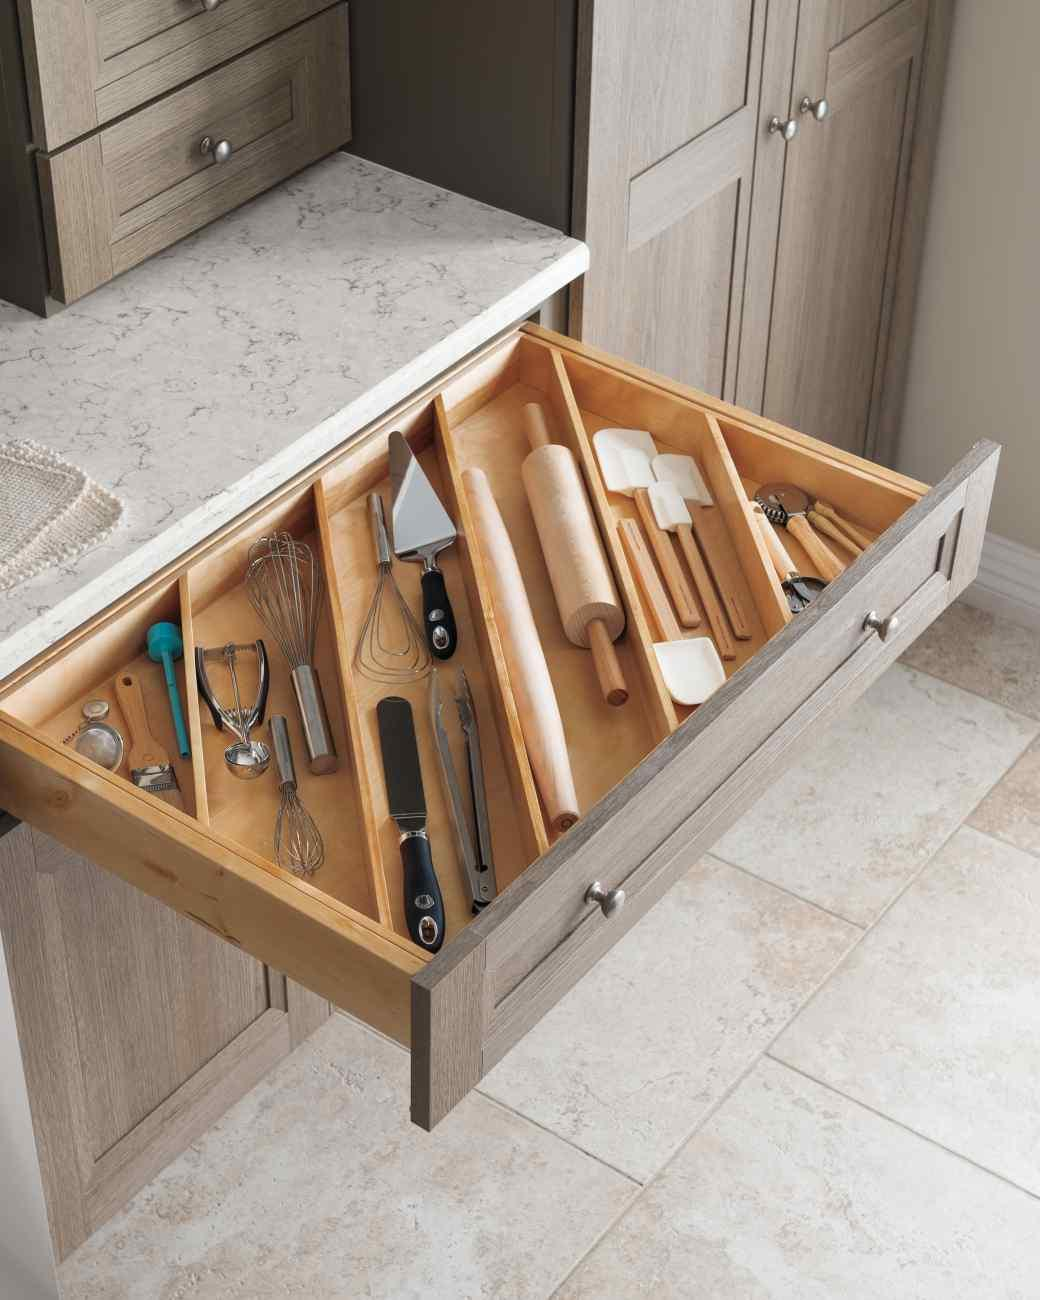 Divide Drawers Diagonally to Store More Items in Narrower Drawers